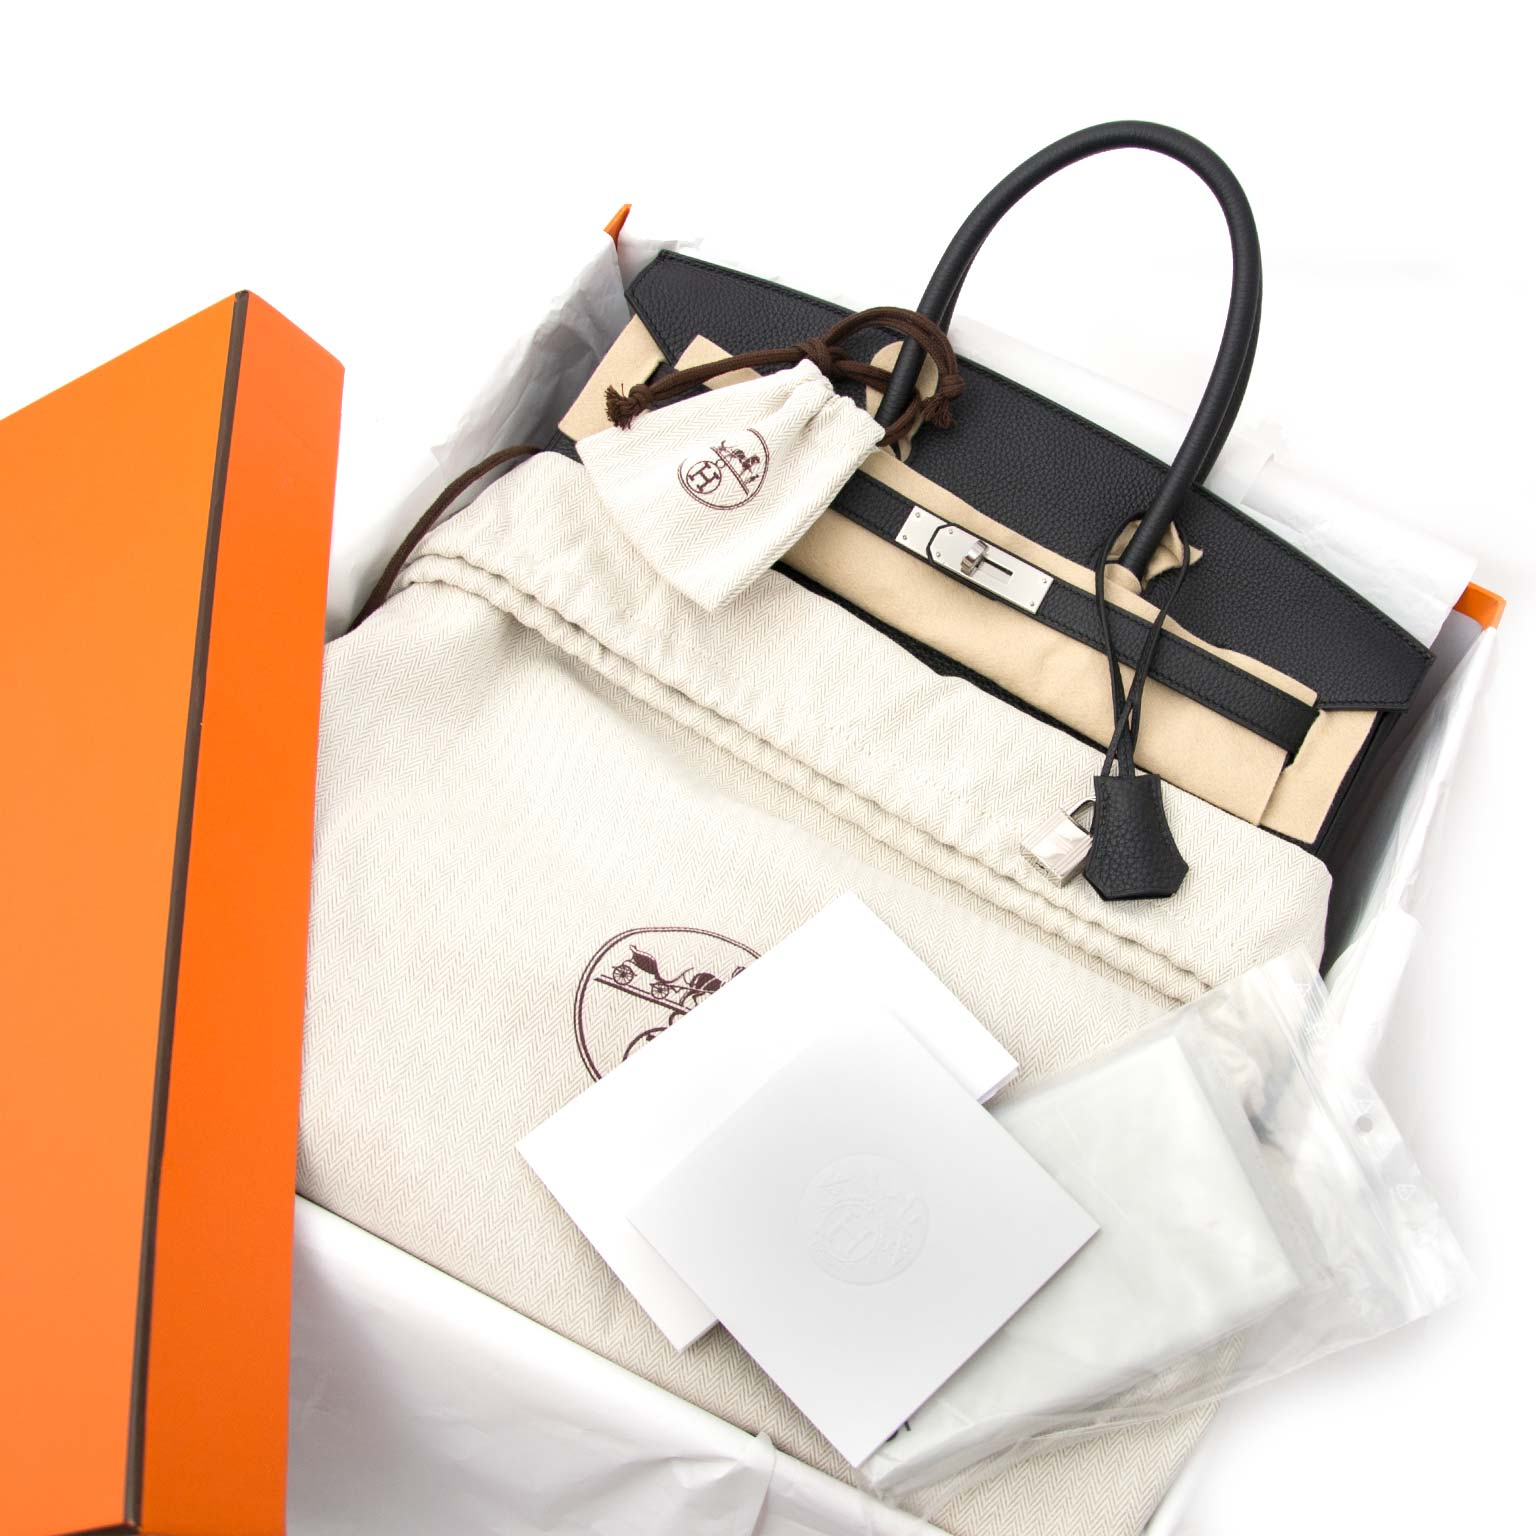 3a3f9b4096 100% authentiek looking for a Hermès Birkin 35 Togo Black PHW  Skip the  waitinlist and get your